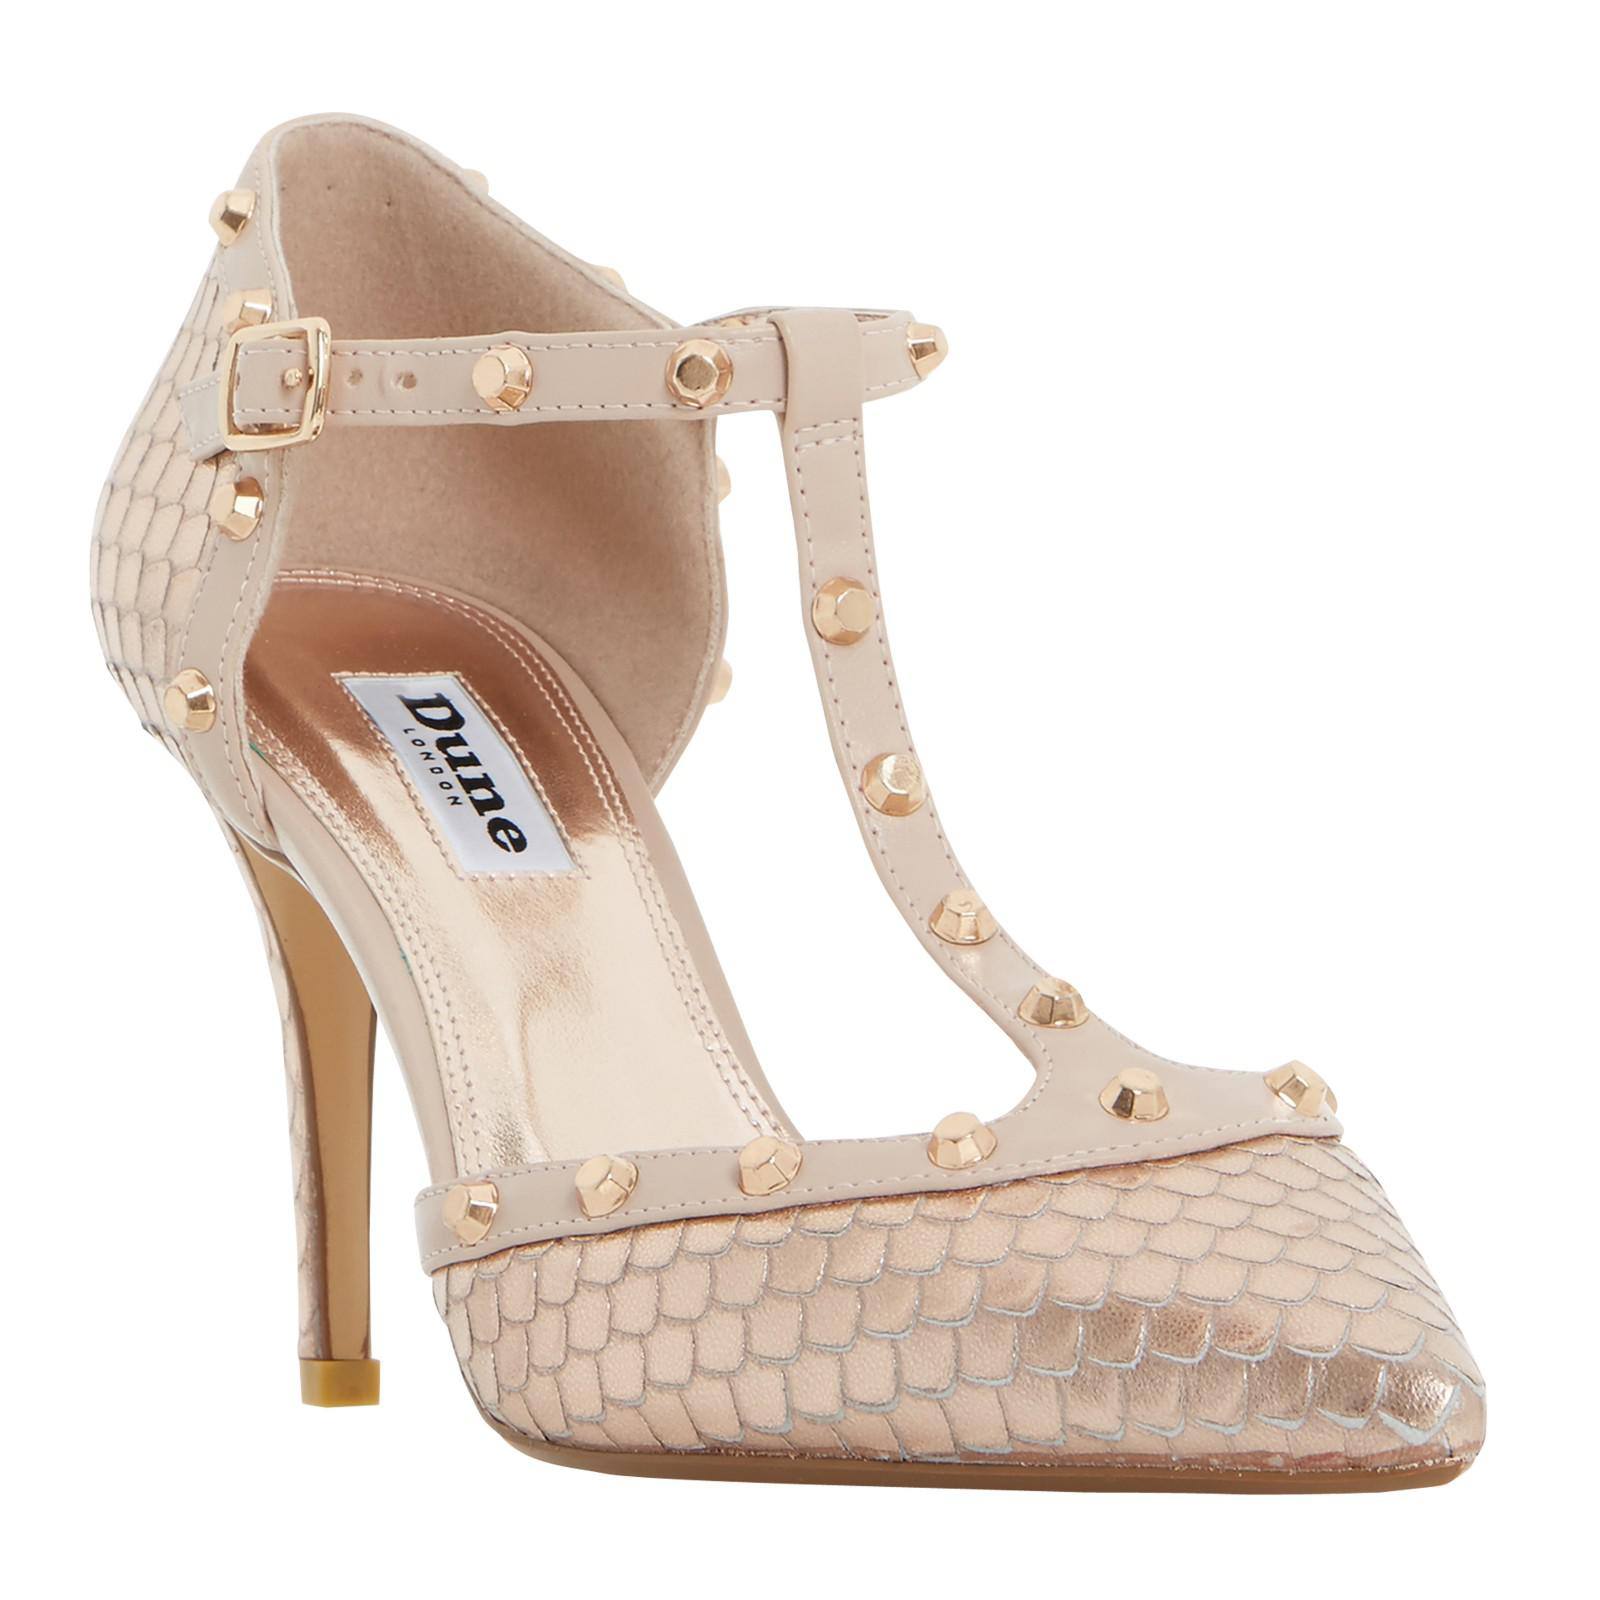 3539fbb6ed28 Dune Cliopatra Studded T-bar Court Shoes - Lyst